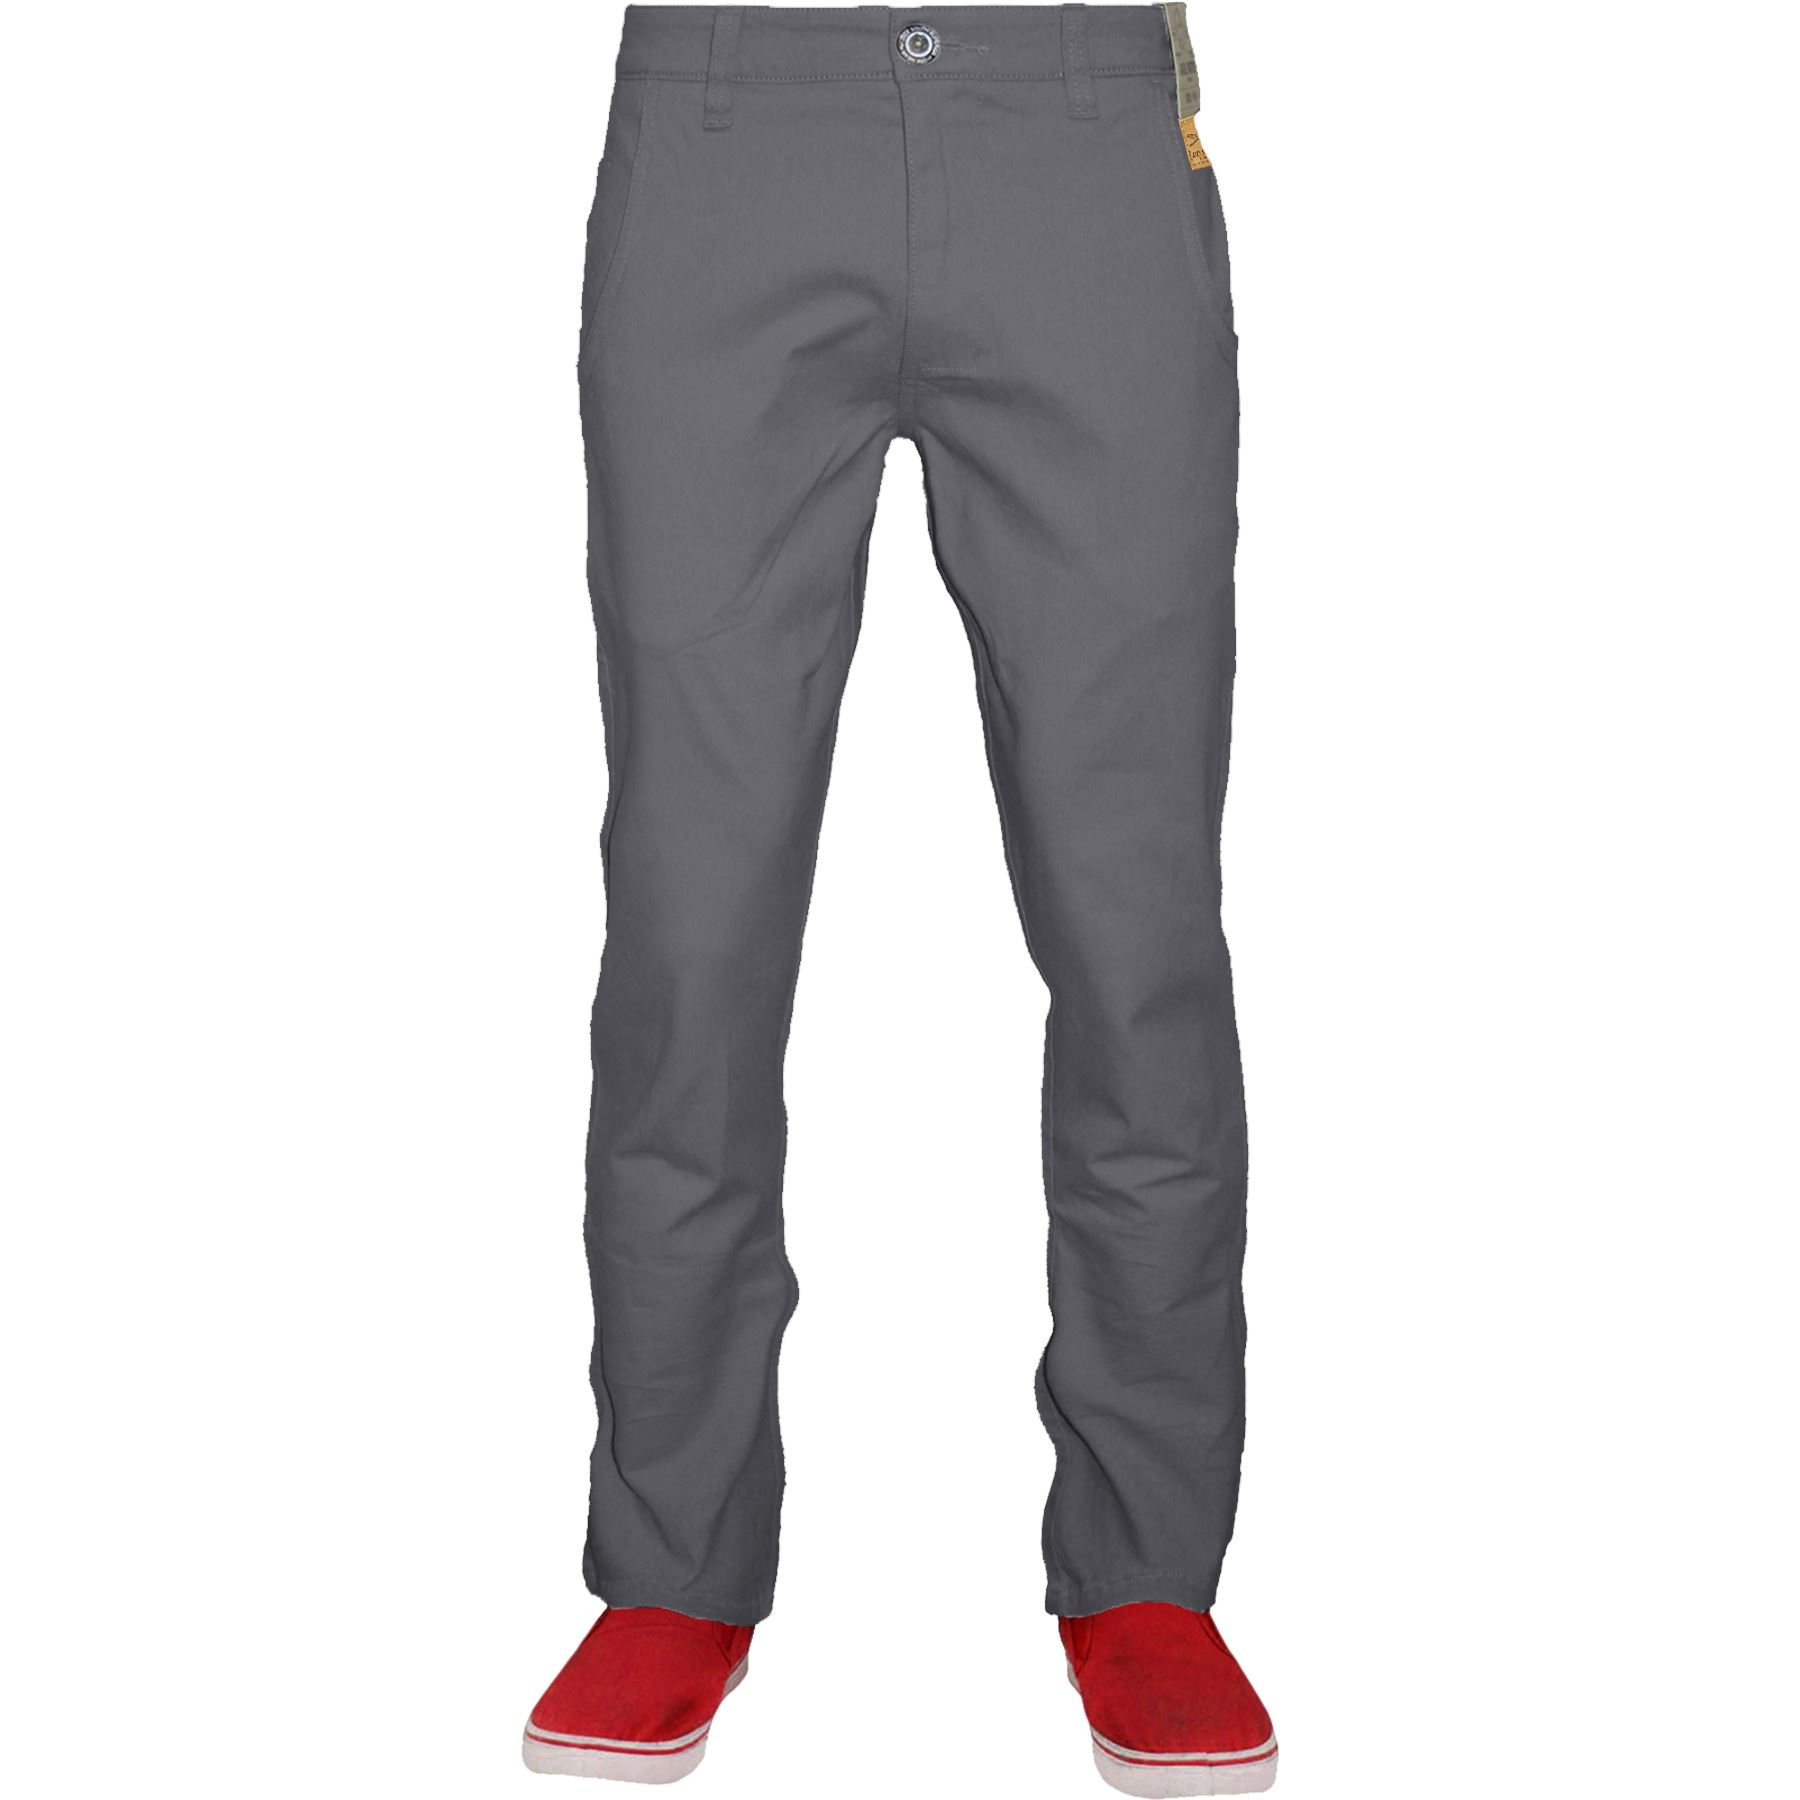 Mens-Stretch-Chino-Jacksouth-Designer-Regular-Fit-Straight-Leg-Trousers-Cotton thumbnail 8